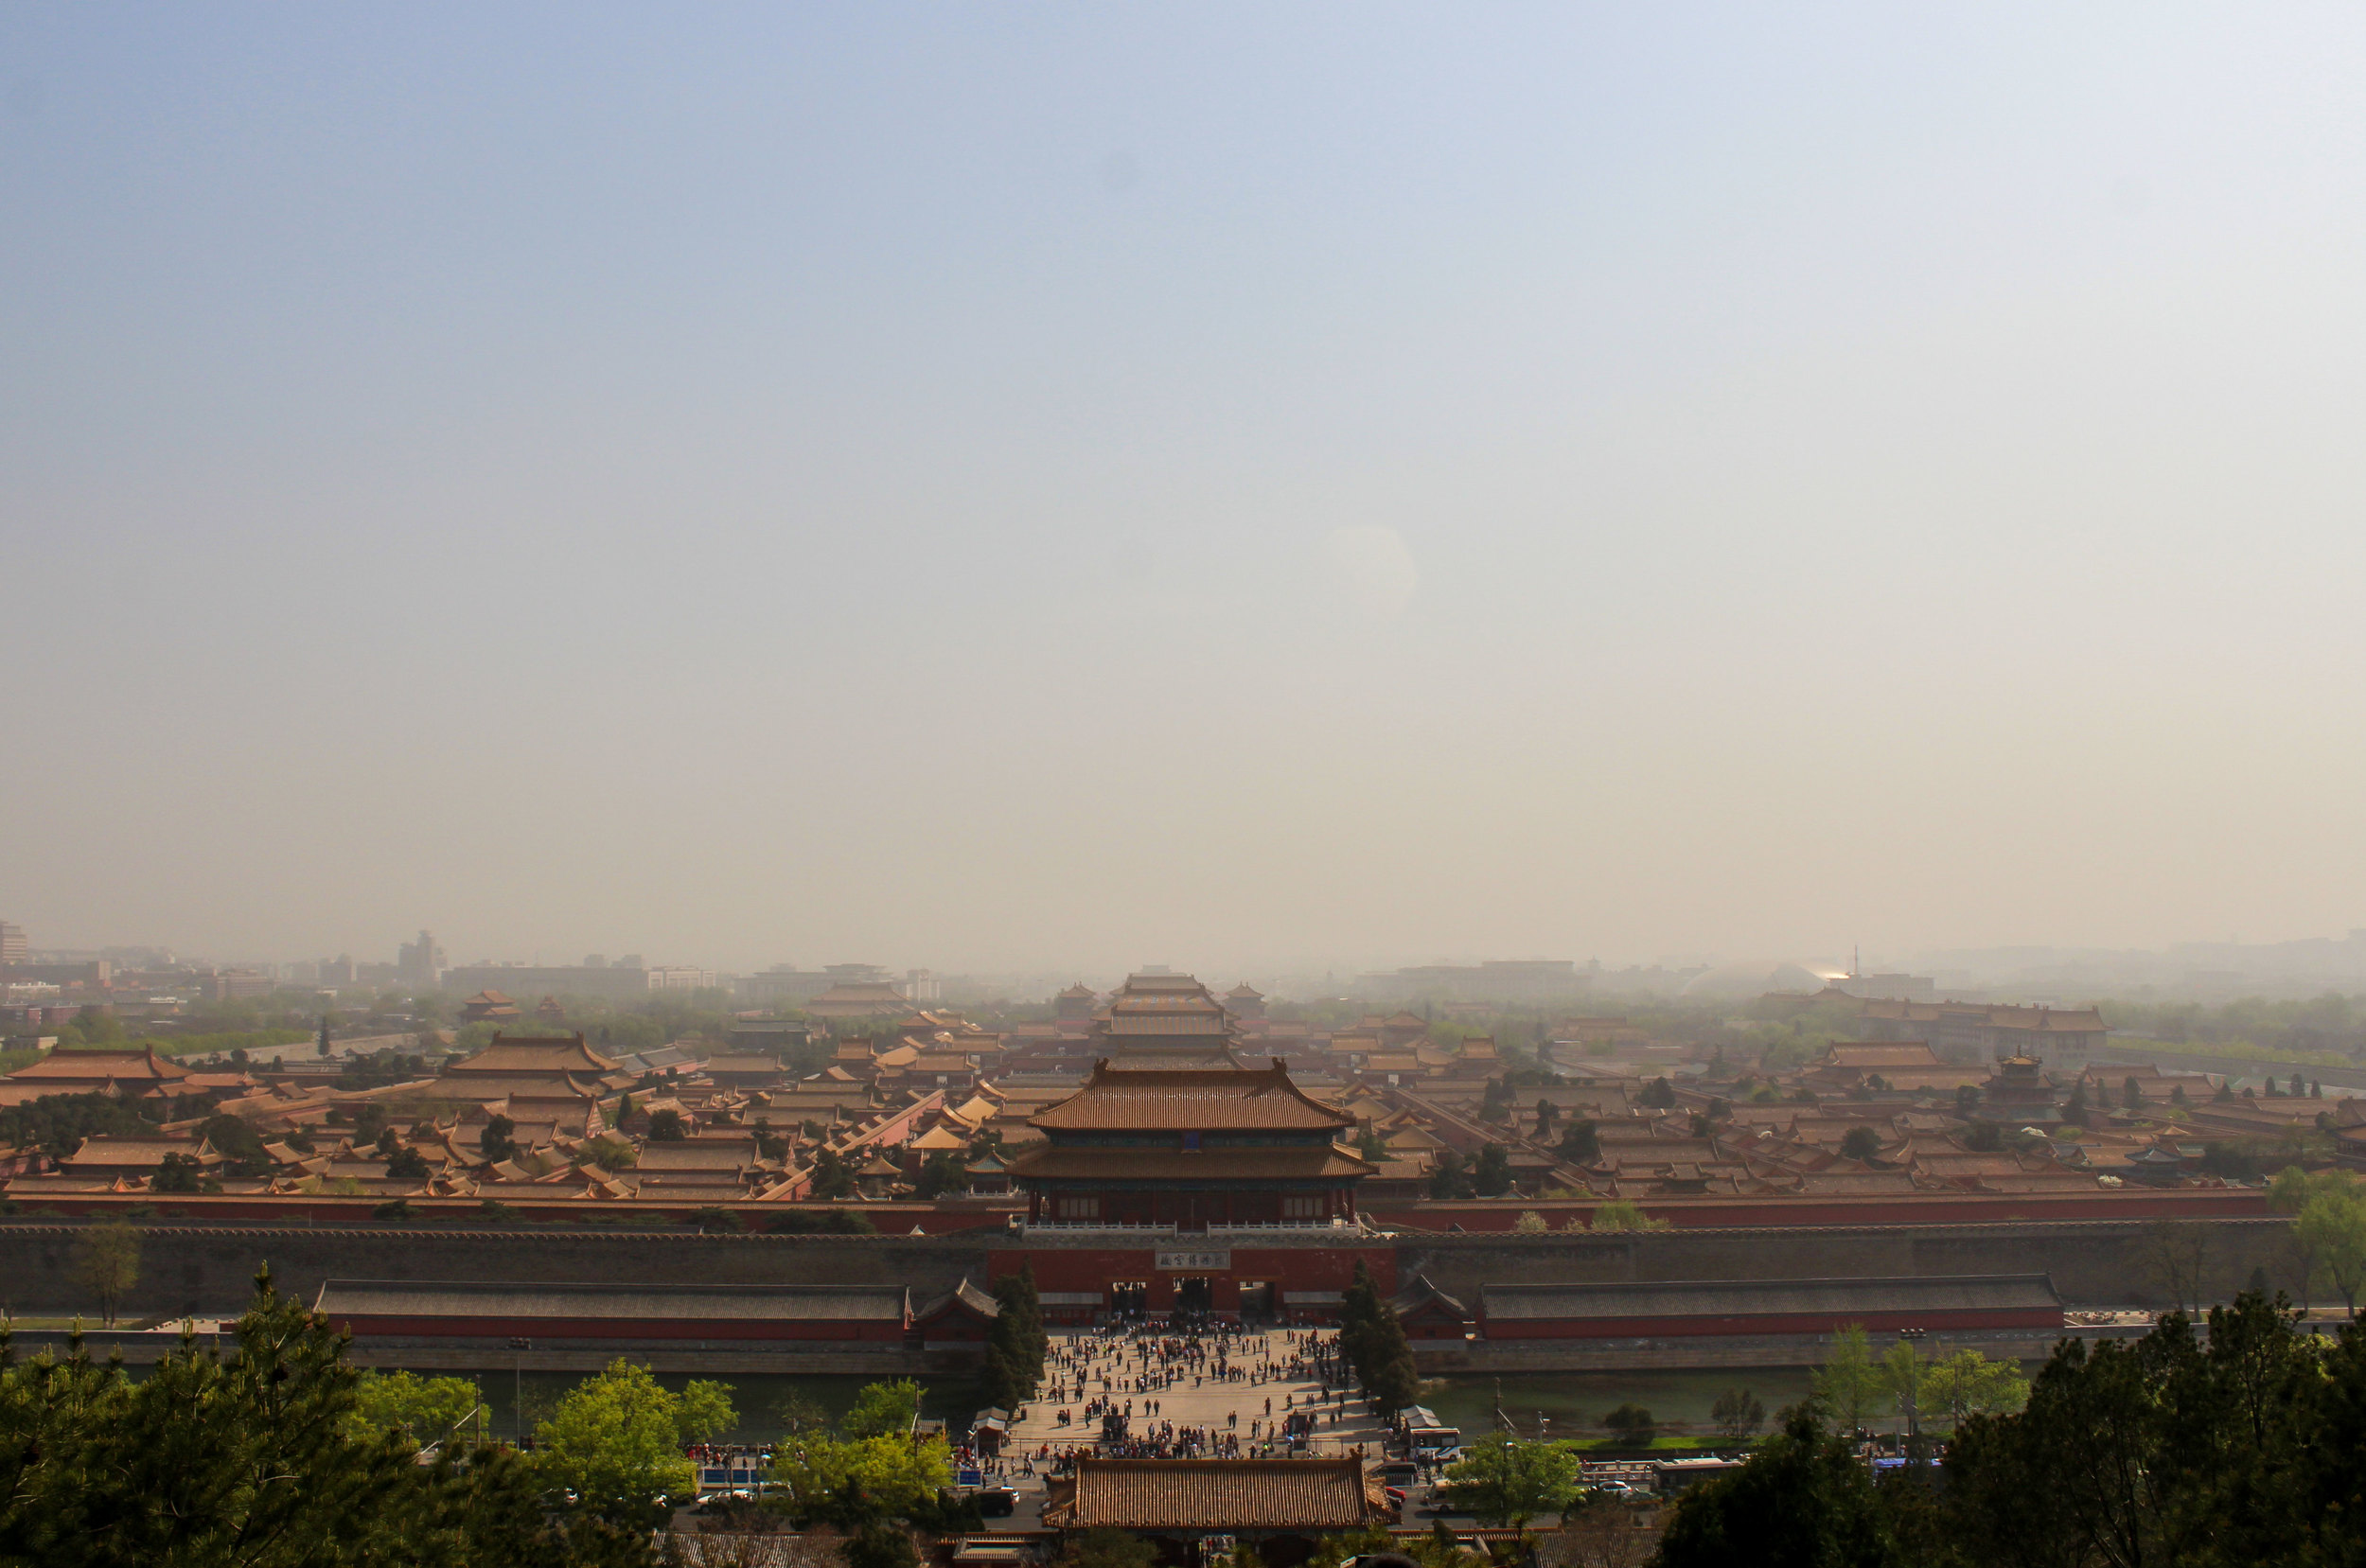 The Forbidden City gains some additional mystique thanks to the permanent veil of smog